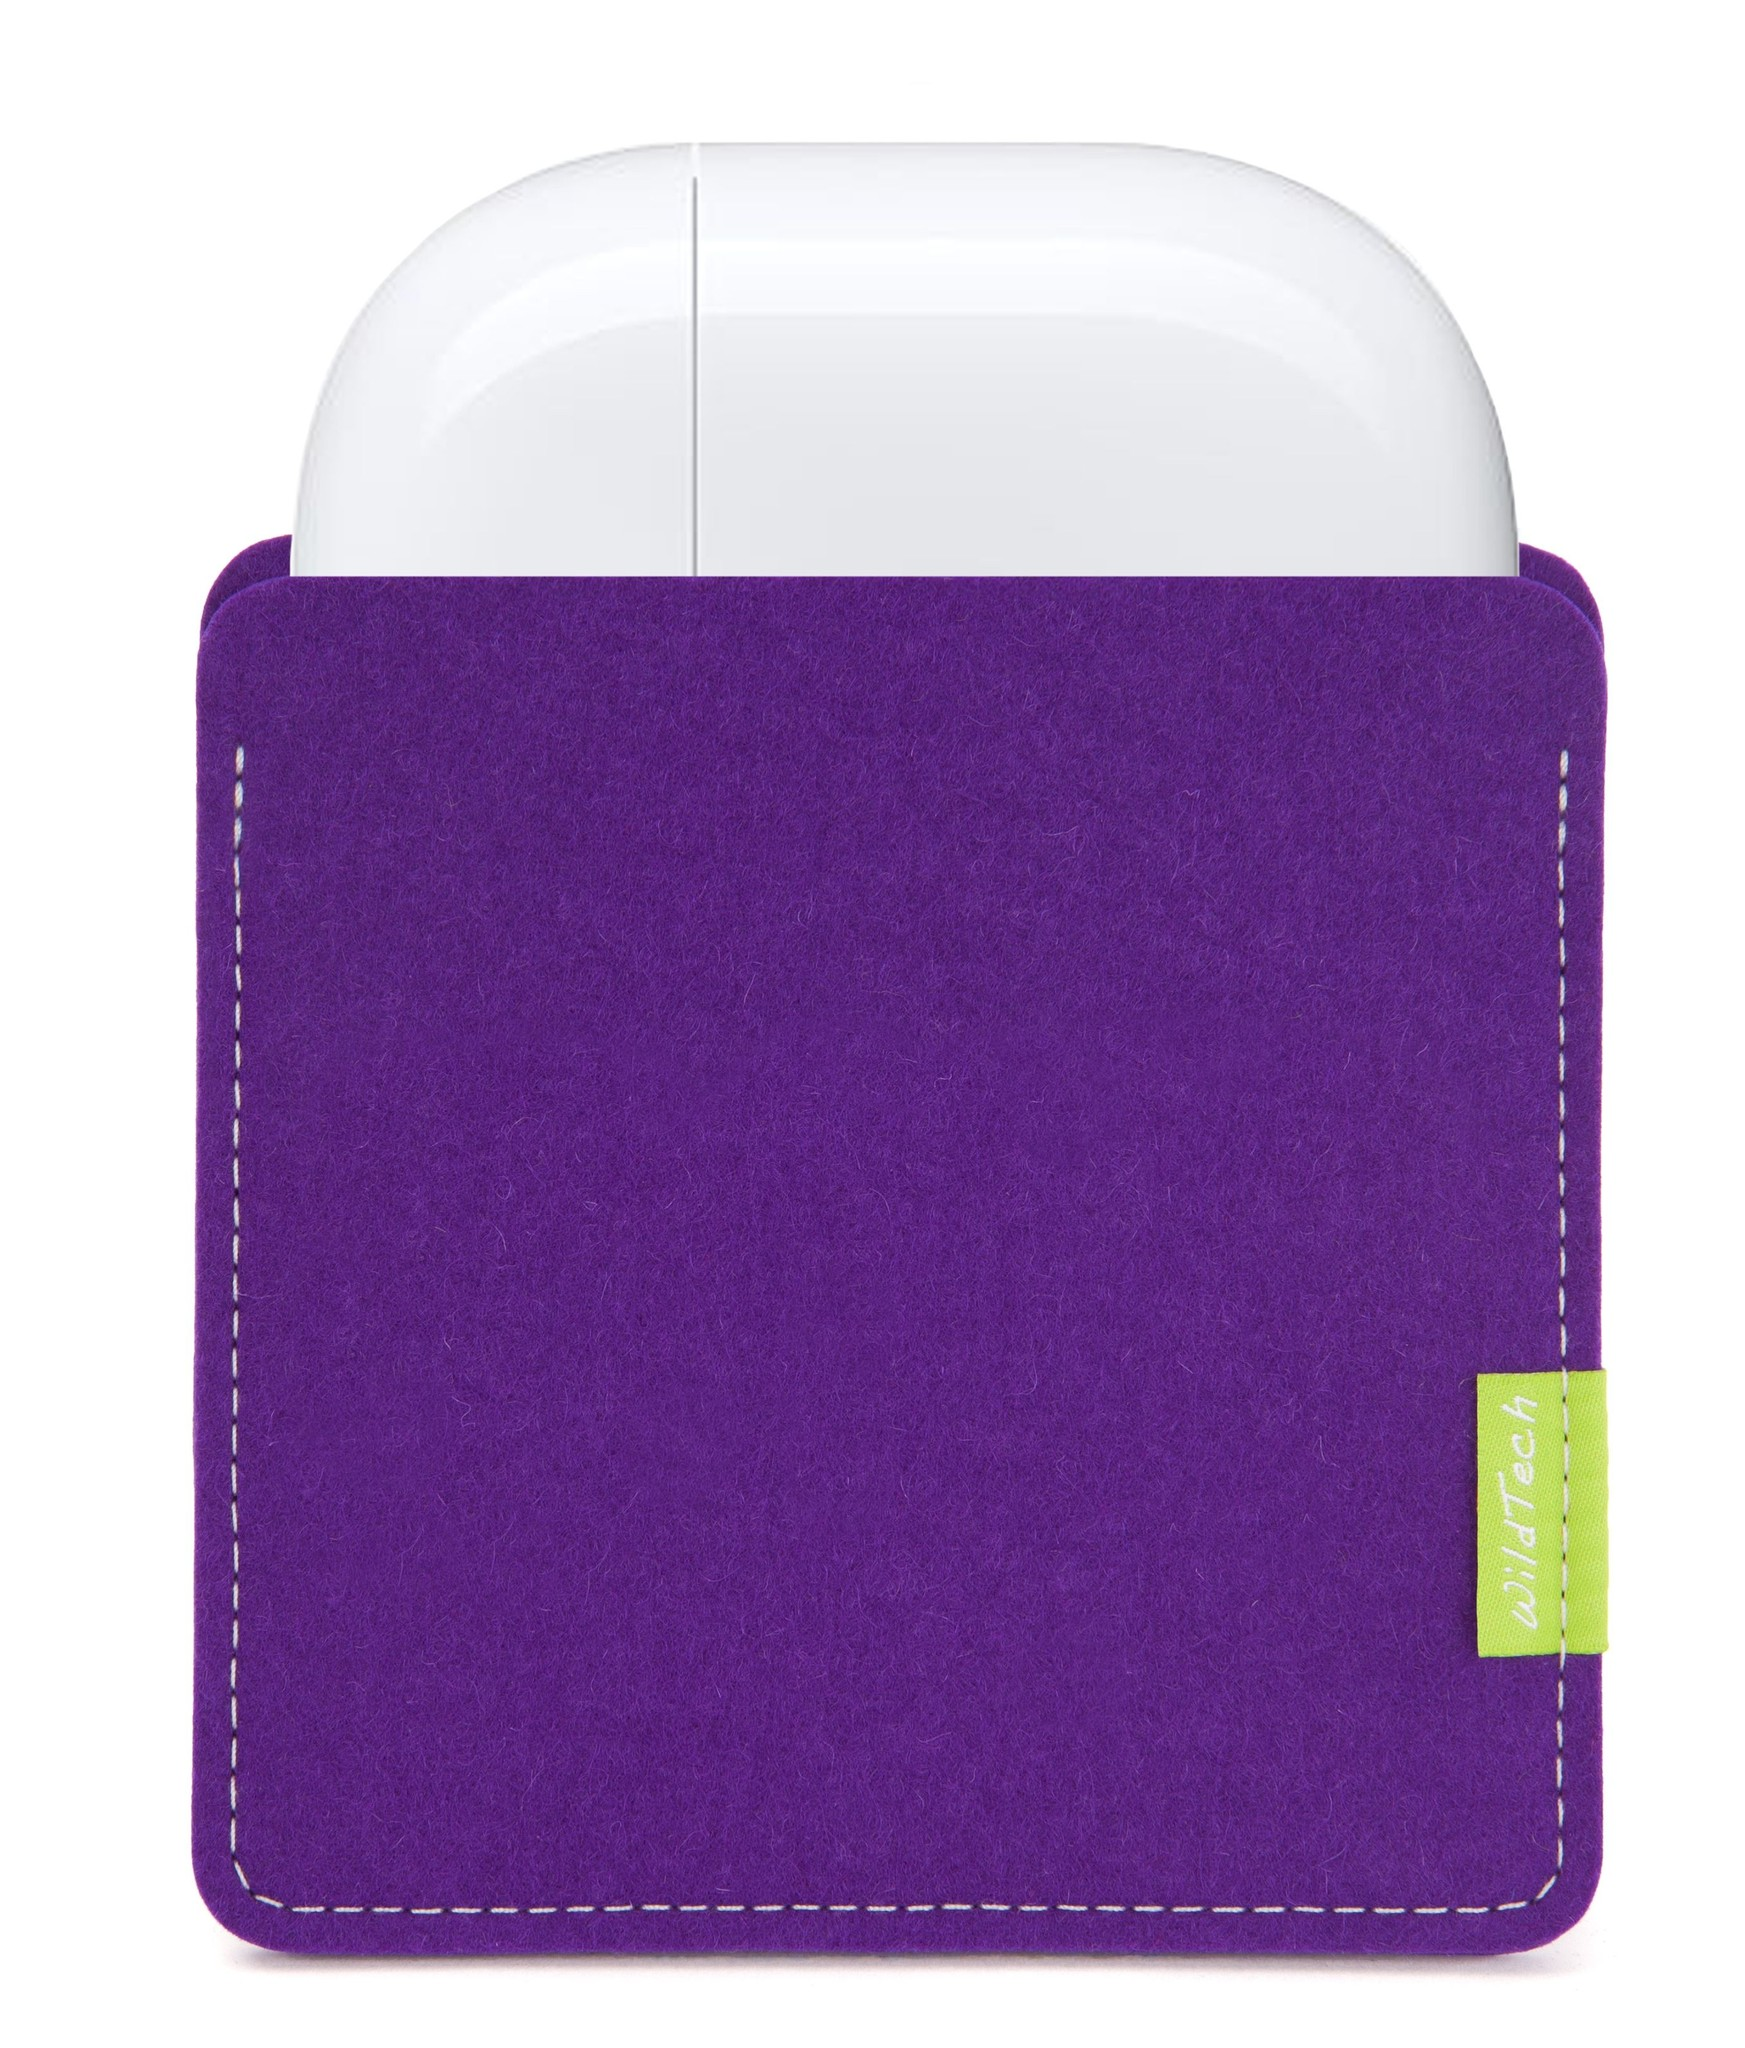 AirPods Sleeve Purple-1